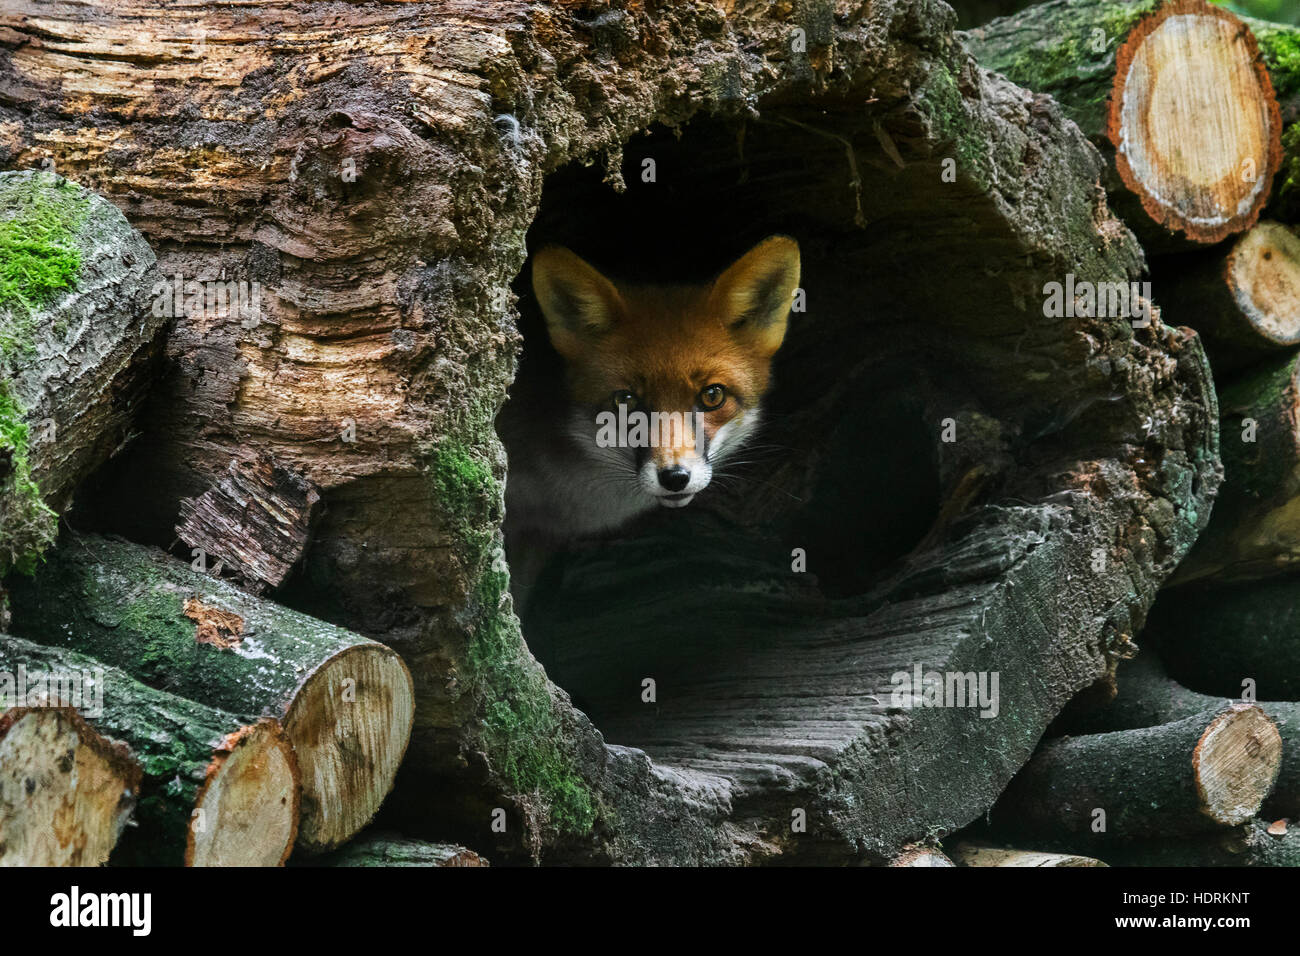 Red fox (Vulpes vulpes) in hollow tree trunk in woodpile in forest - Stock Image